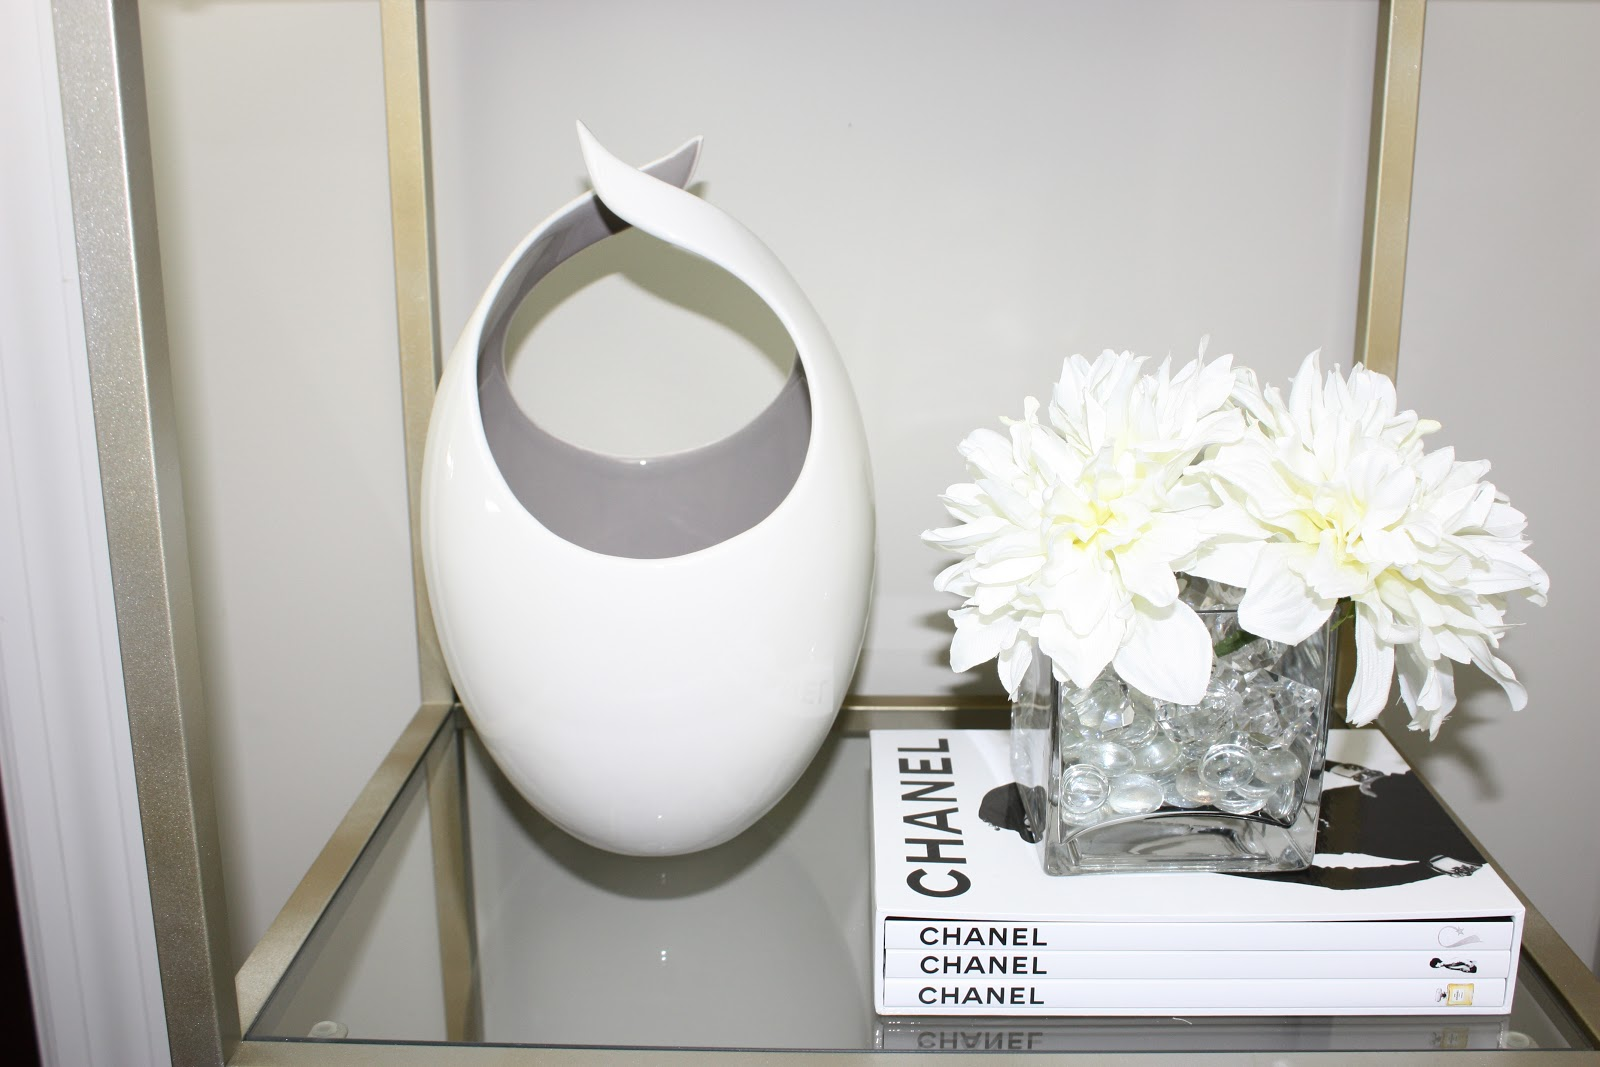 Inspiration in stages home project jazzing up ikea vittsjo aria taupe vase to die for currently sold out in the taupe color seen above but more colors found here chanel set of 3 books fashion jewelry reviewsmspy